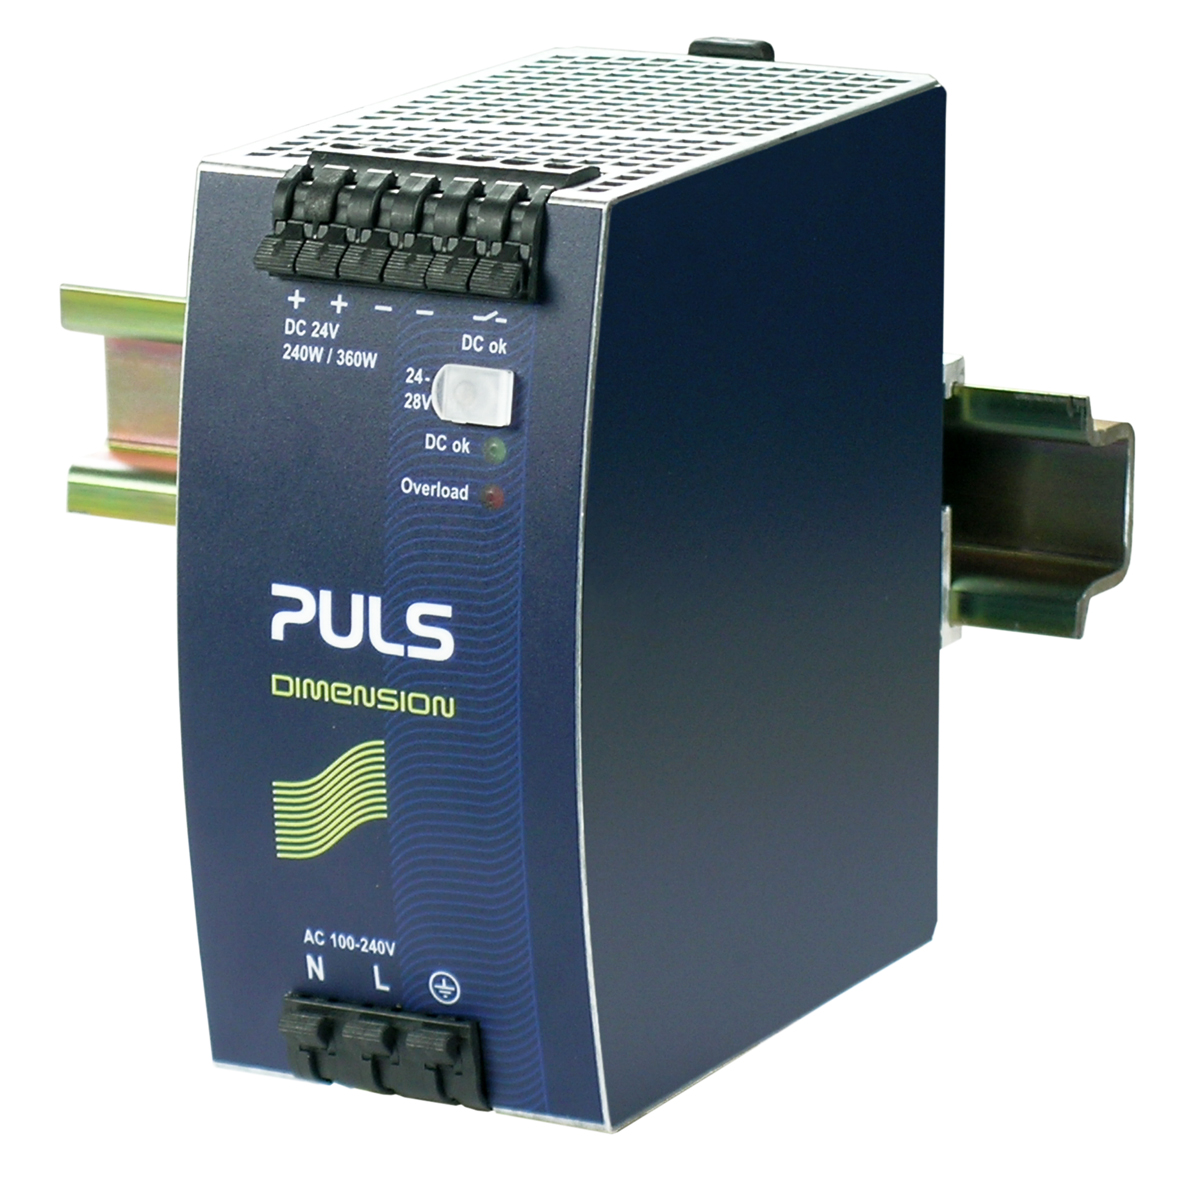 A1 Din Qs10 241 A1 Din Rail Power Supplies For 1 Phase Systems